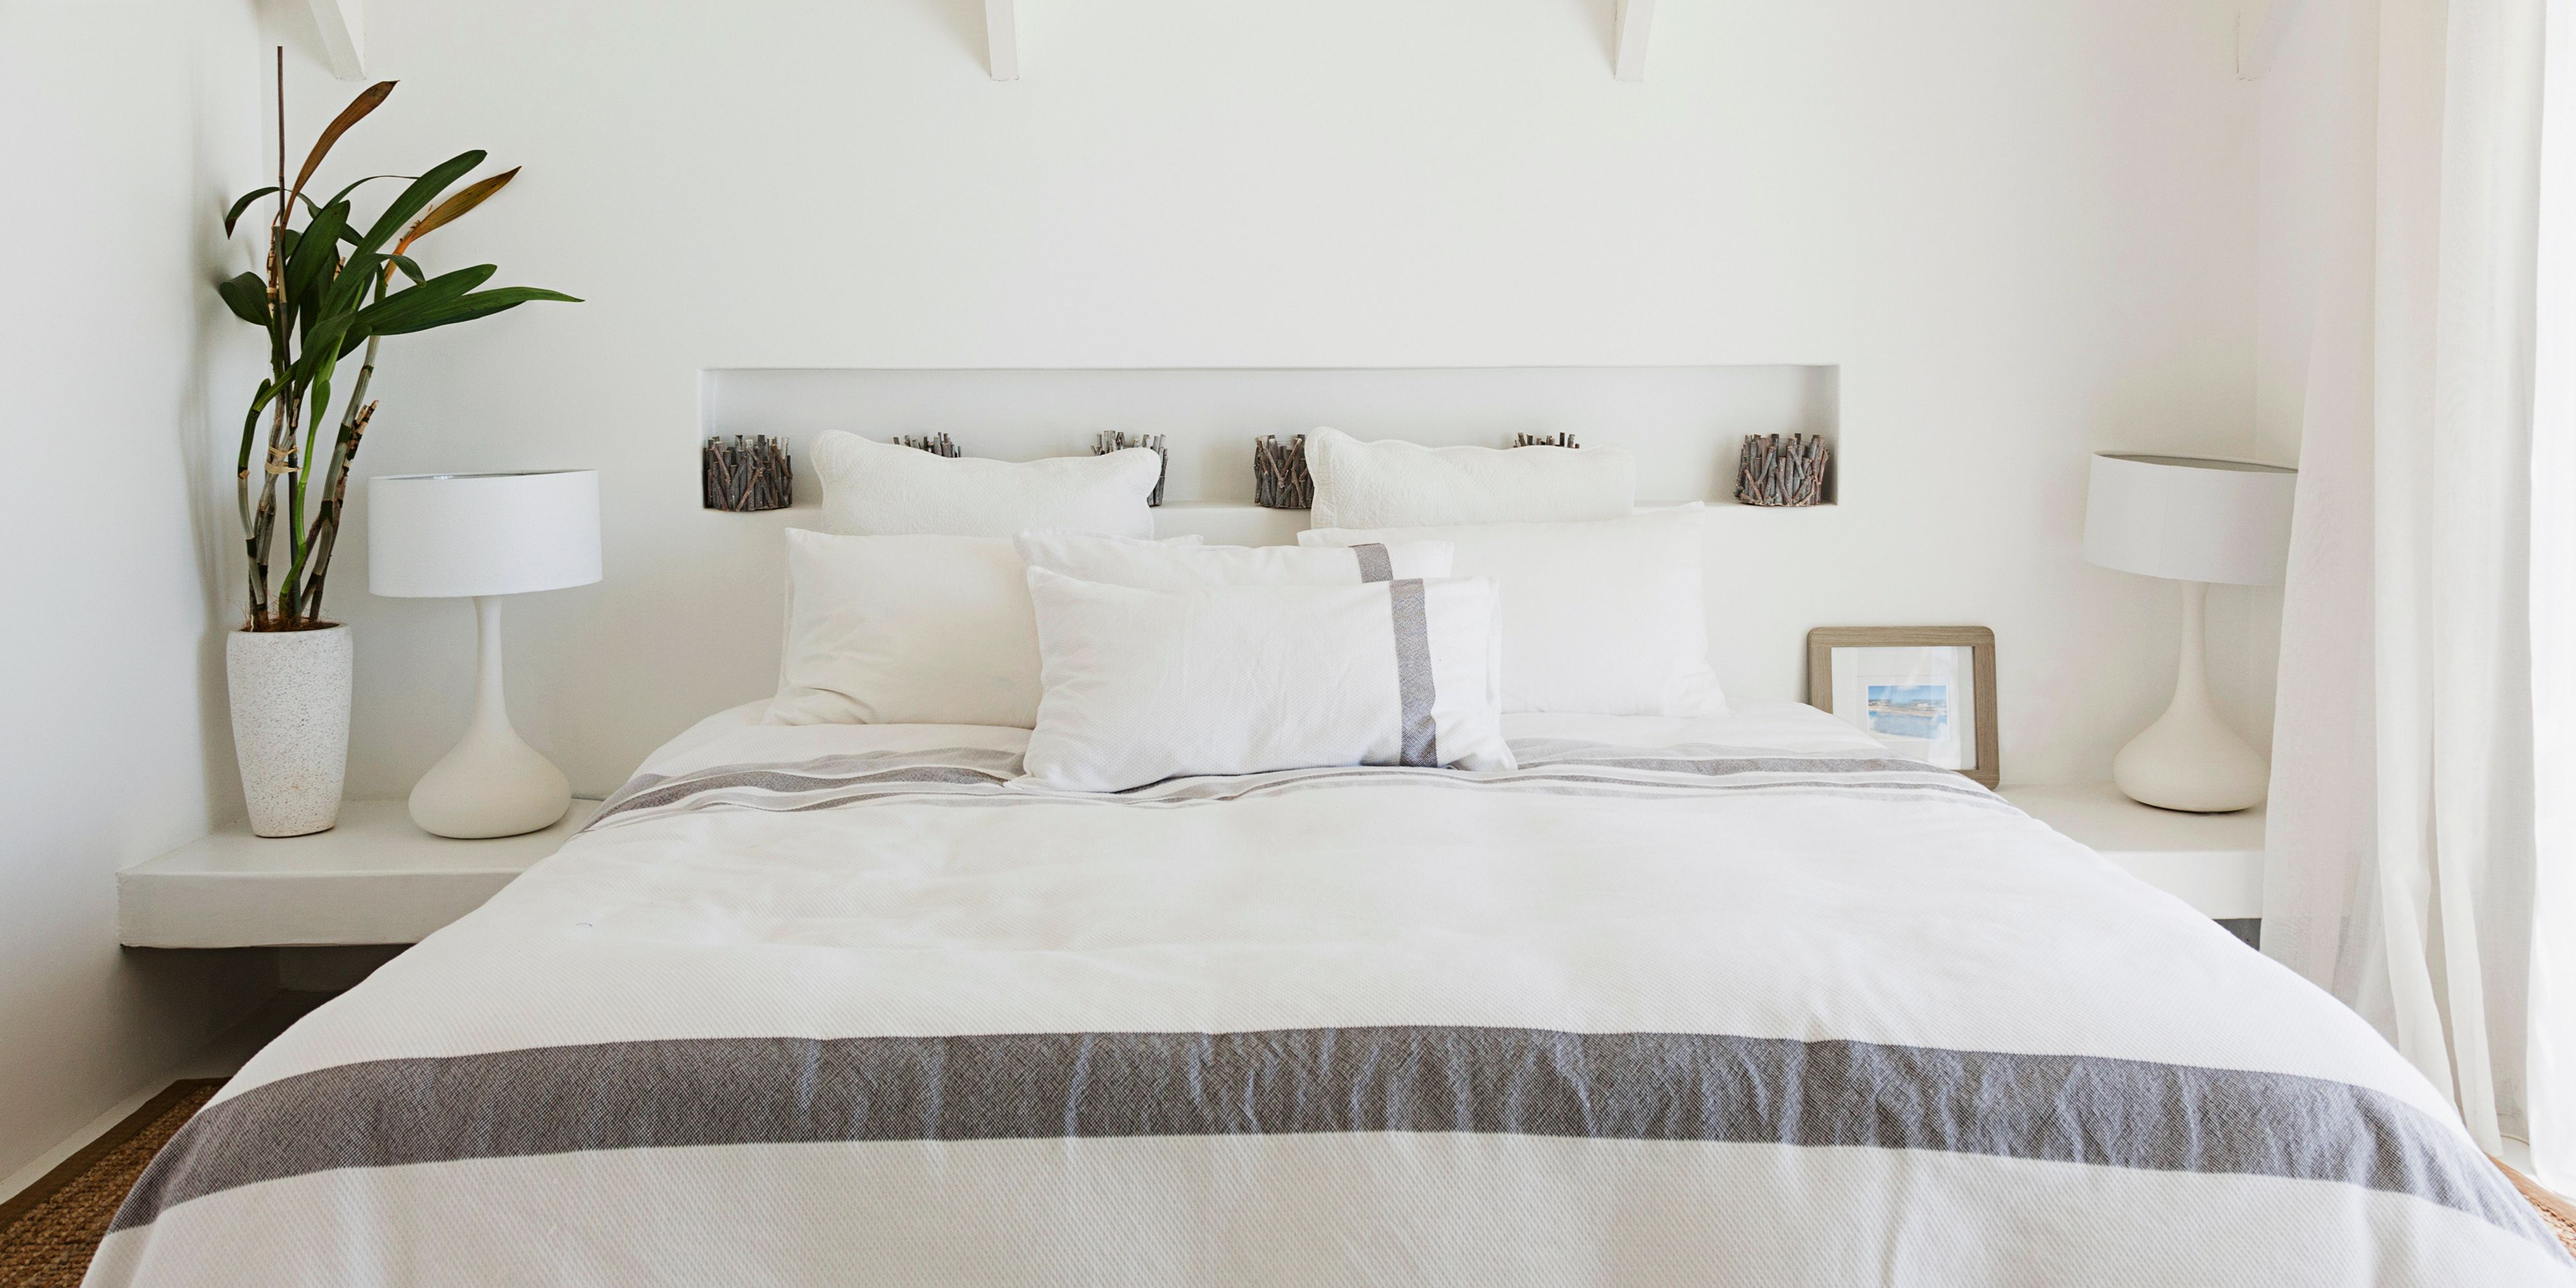 home chic master bamboo sheets sheet by valsheetsetbychichome bed hayneedle val set cfm product